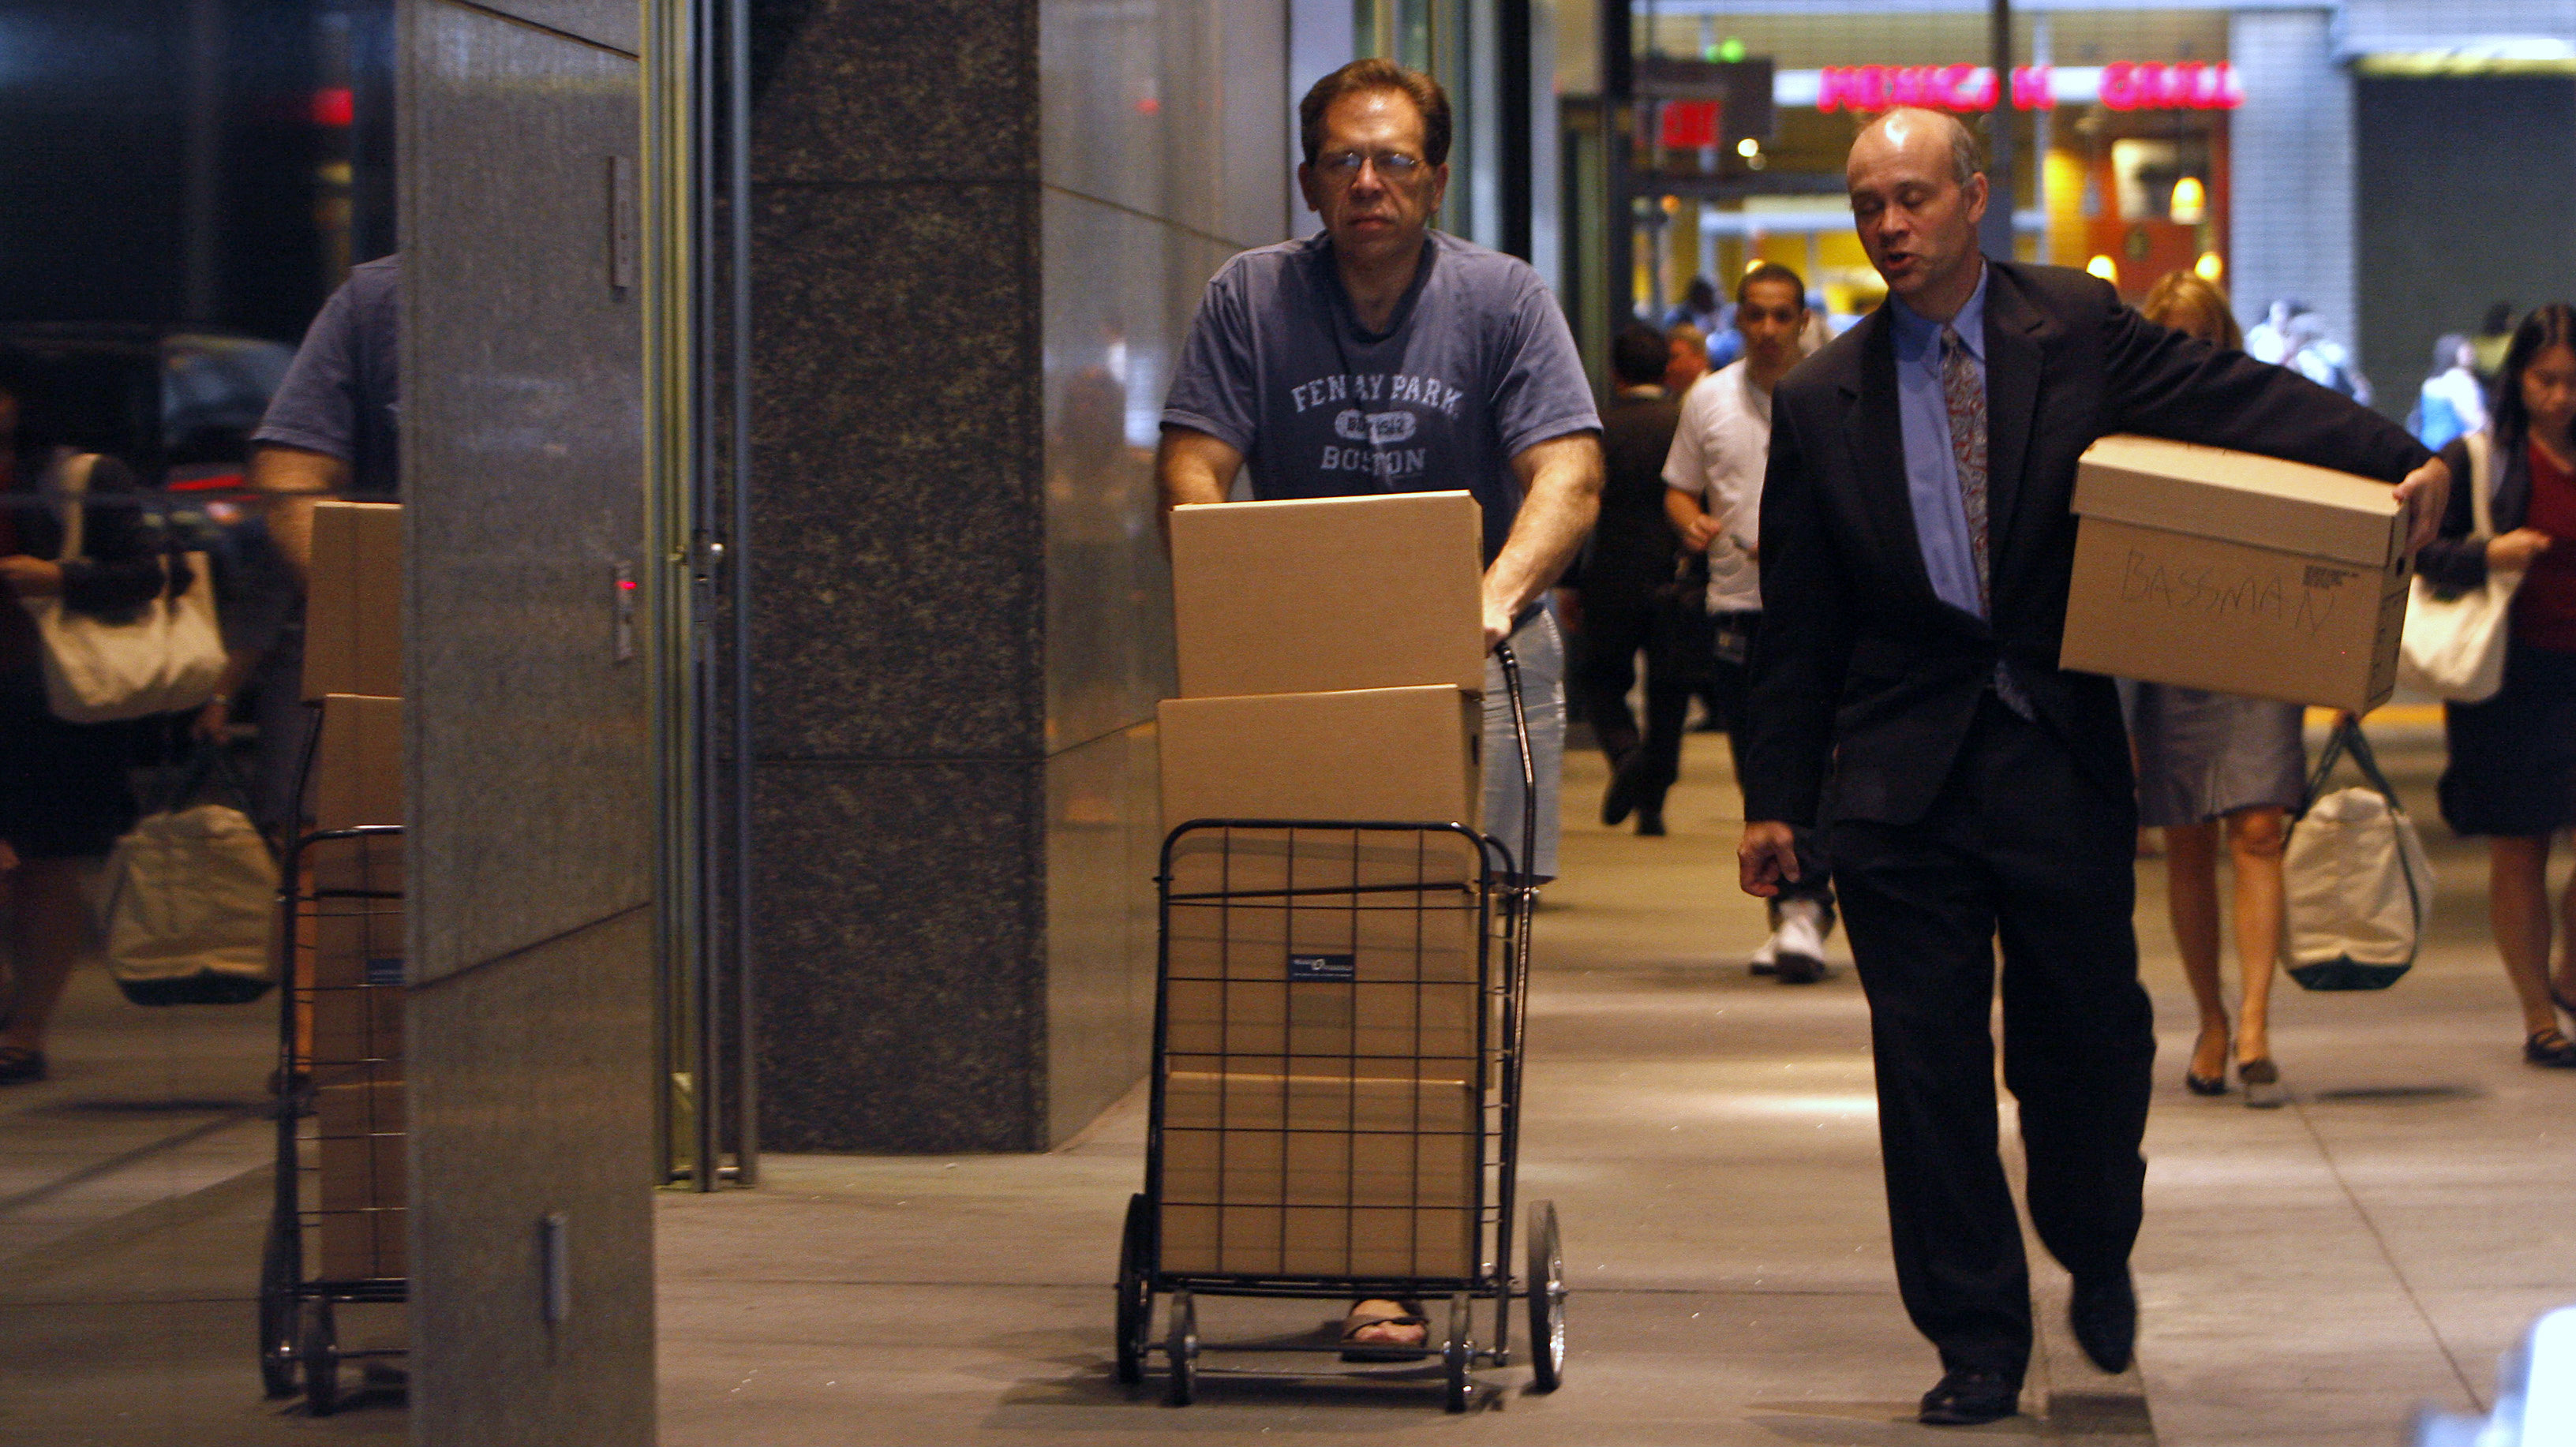 Two men walk out of the Lehman Brothers building with boxes in New York September 15, 2008. Stunned and angry, Lehman Brothers' employees packed their bags at company headquarters in New York, with some bitterness over the 158-year-old company's failure aimed at Chief Executive Richard Fuld.